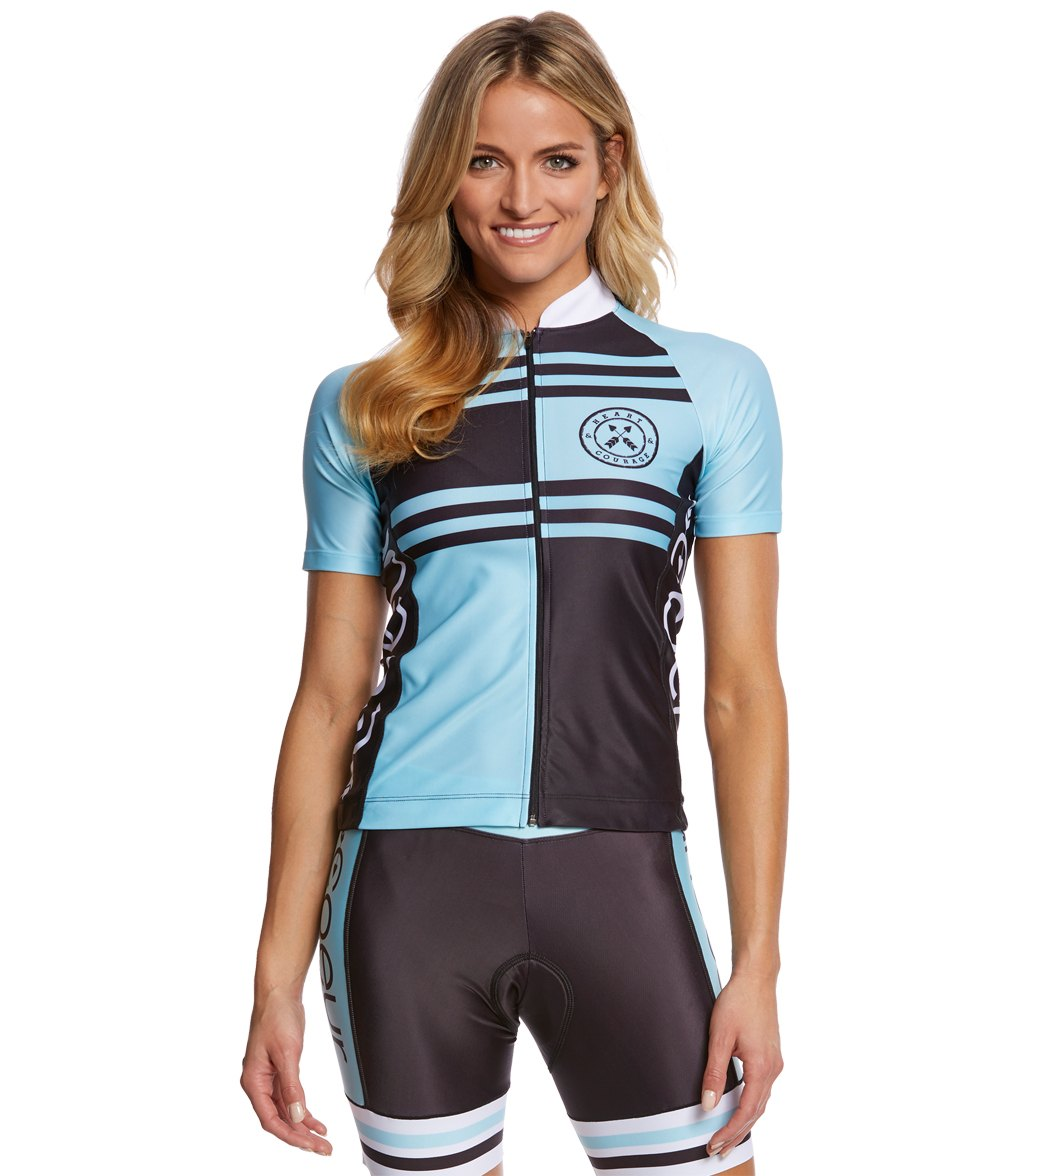 1b48a66b0 Coeur Women s Short Sleeve Cycle Jersey at SwimOutlet.com - Free ...